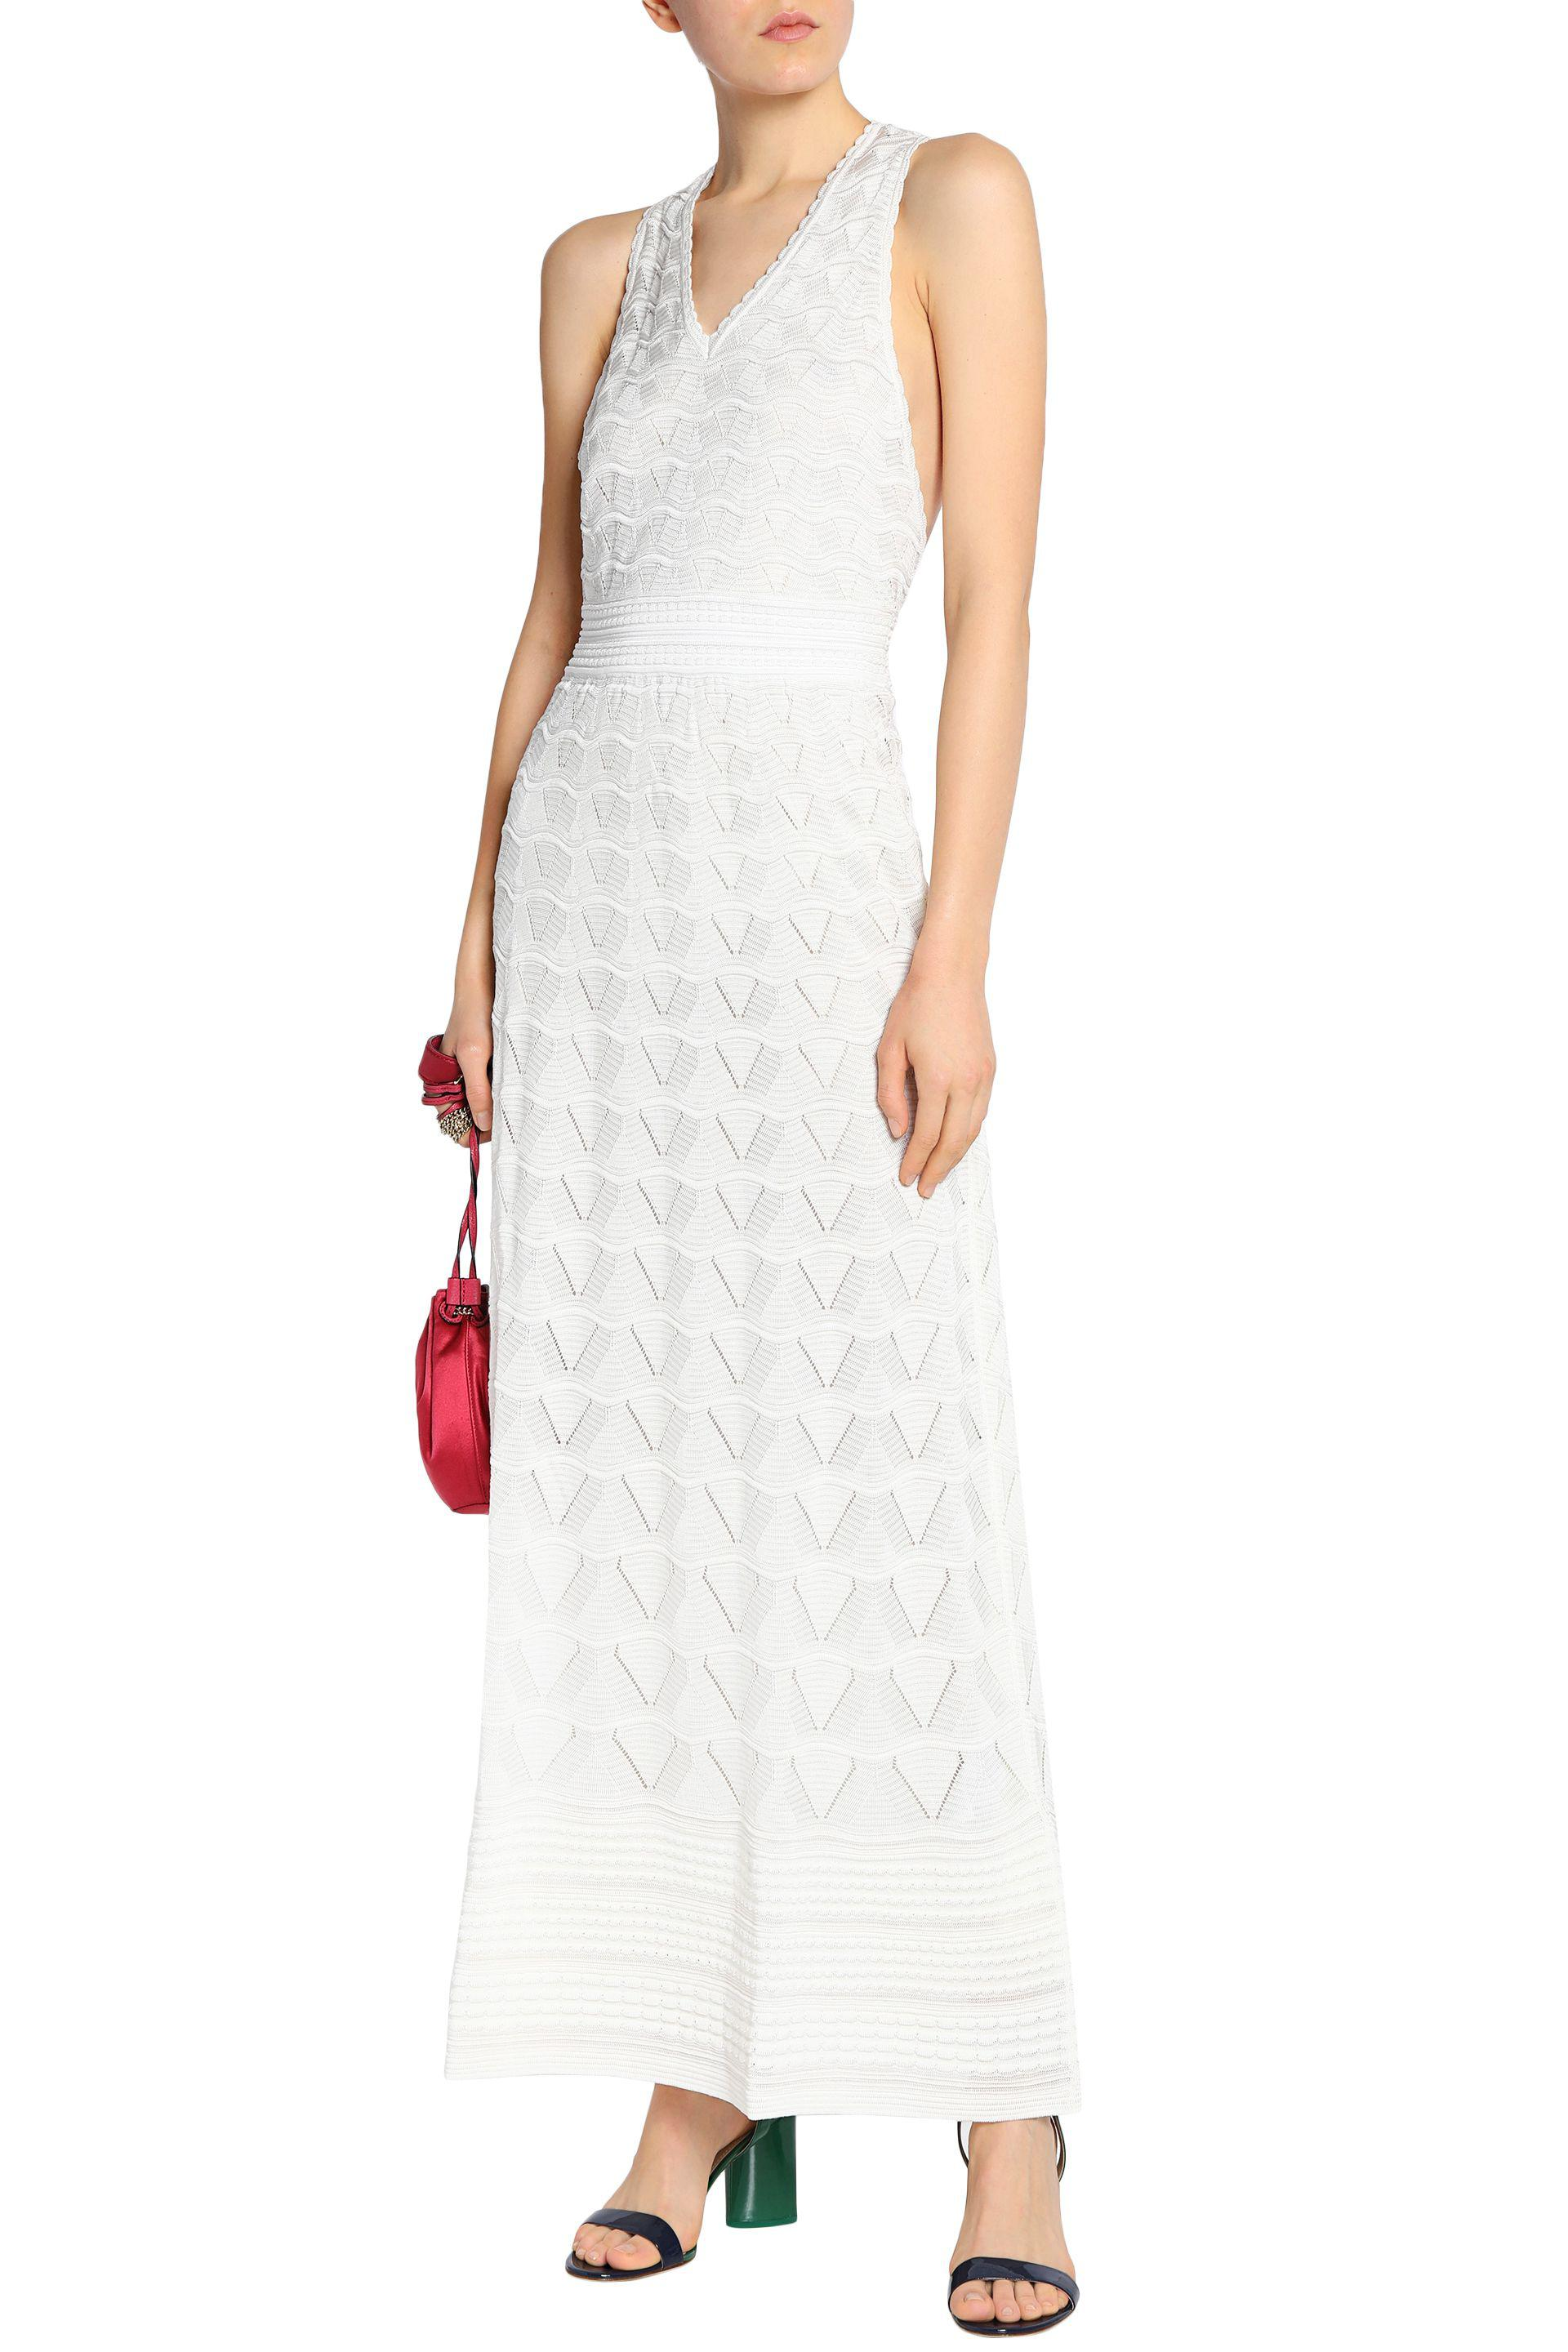 9156ce9597a M Missoni Woman Crochet-knit Cotton-blend Maxi Dress Off-white in ...